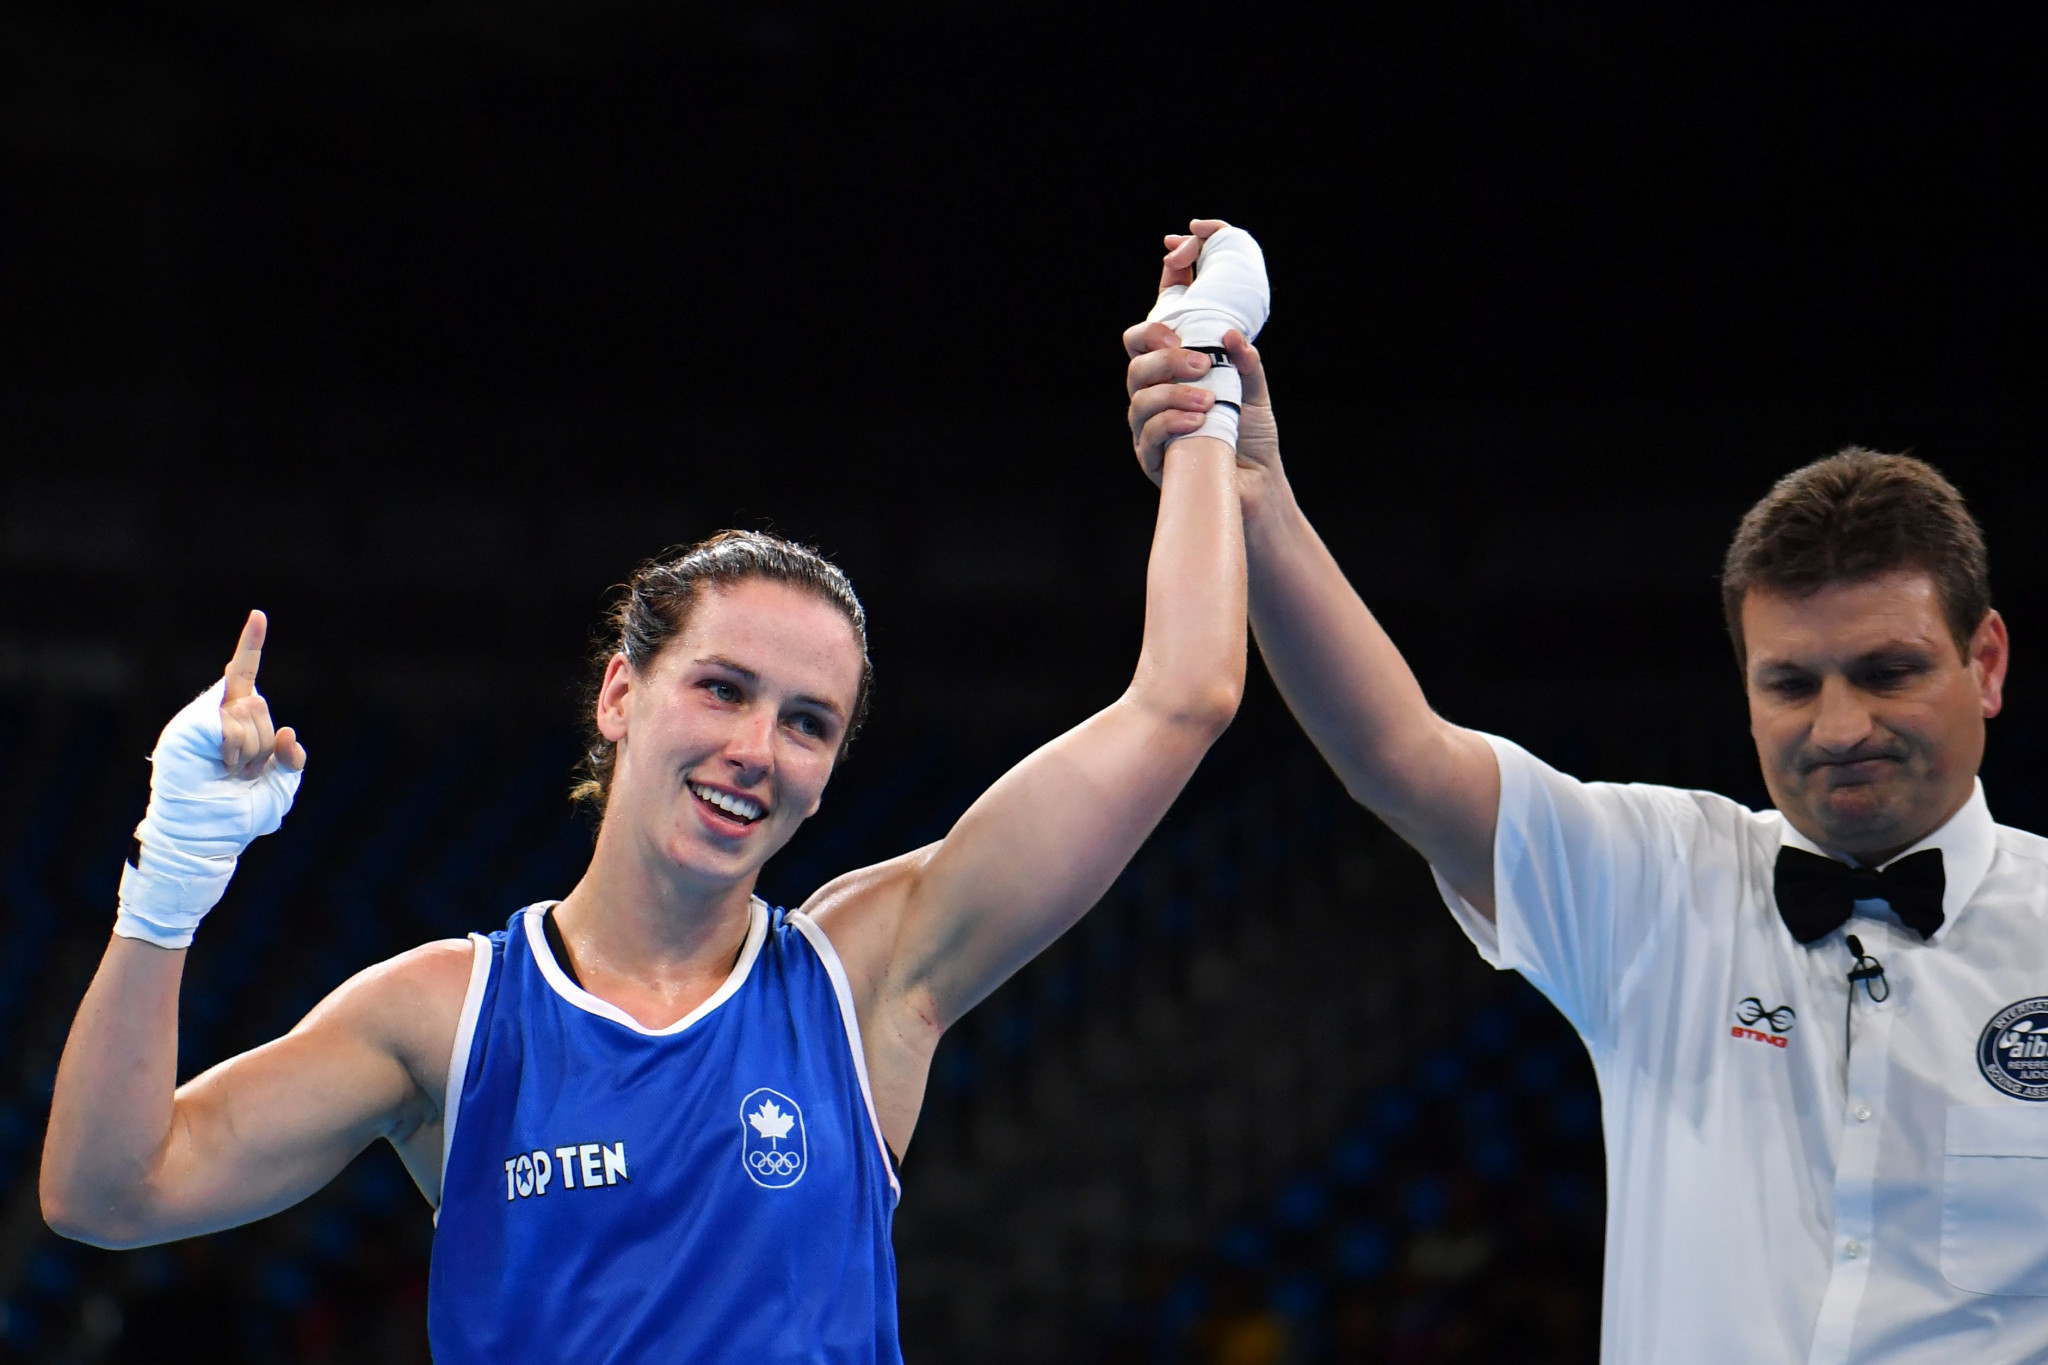 Bujold to challenge IOC decision after boxer denied Olympic berth